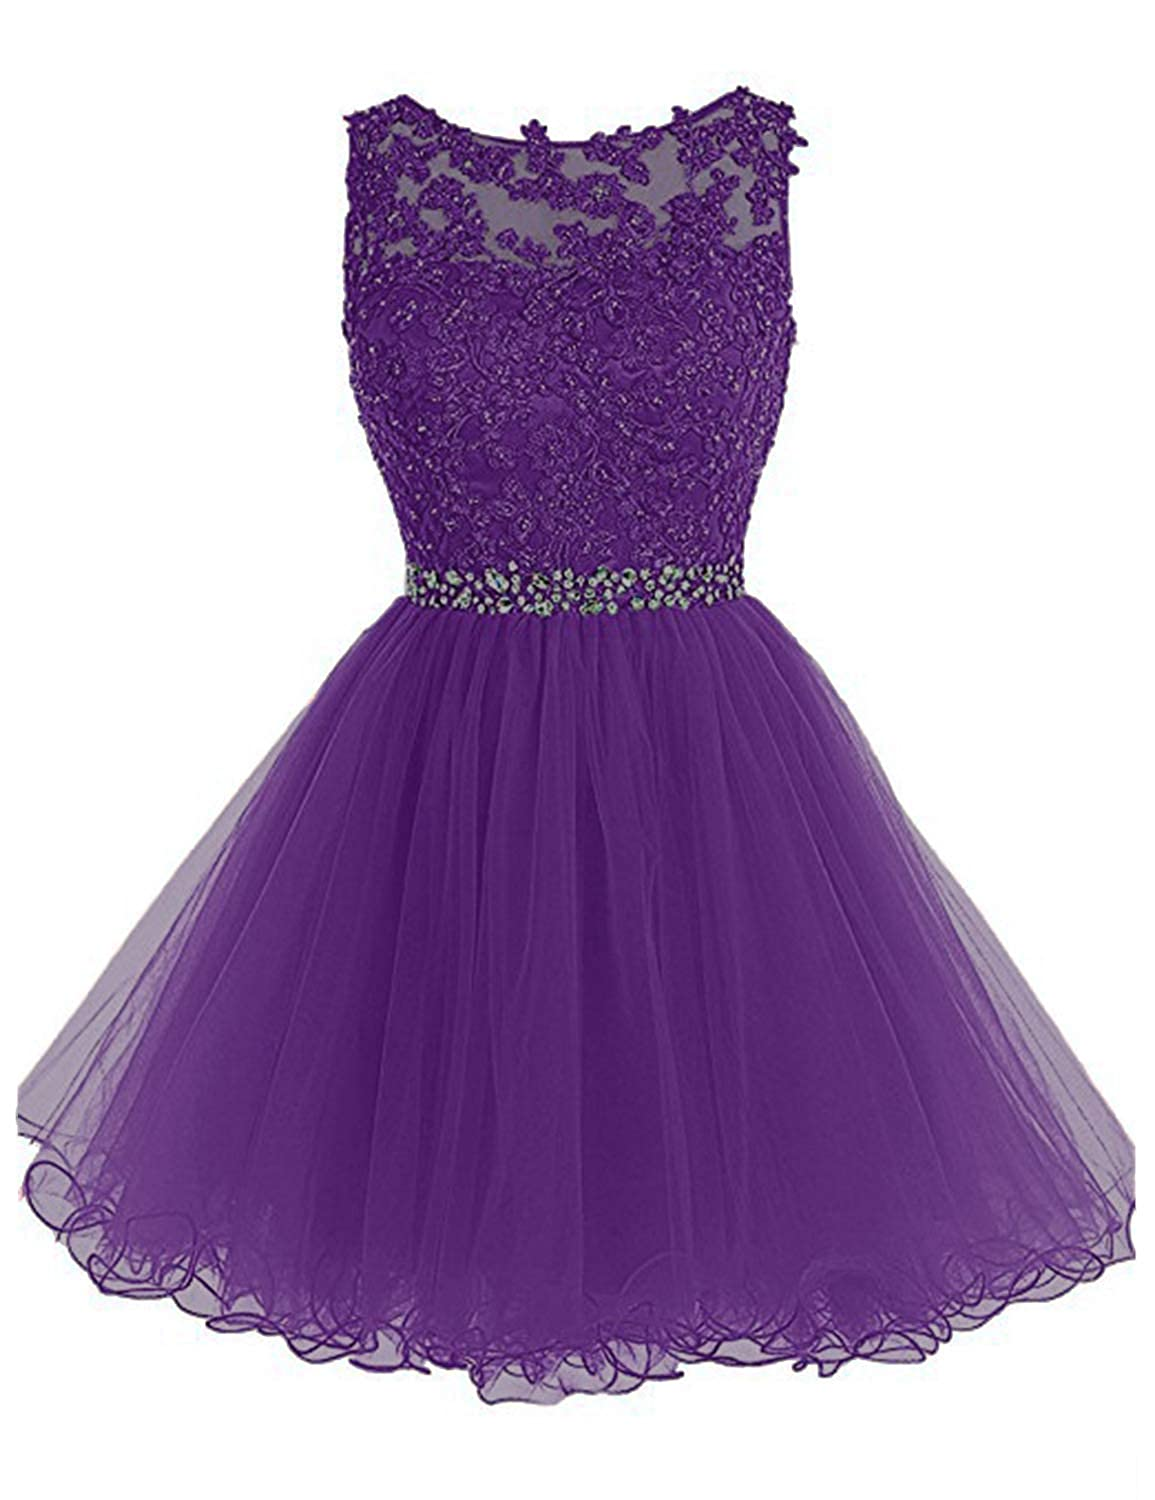 0 Purple 2 Vimans Women's Short Tulle Homecoming Dresses 2018 Knee Length Lace Prom Gowns Dress448